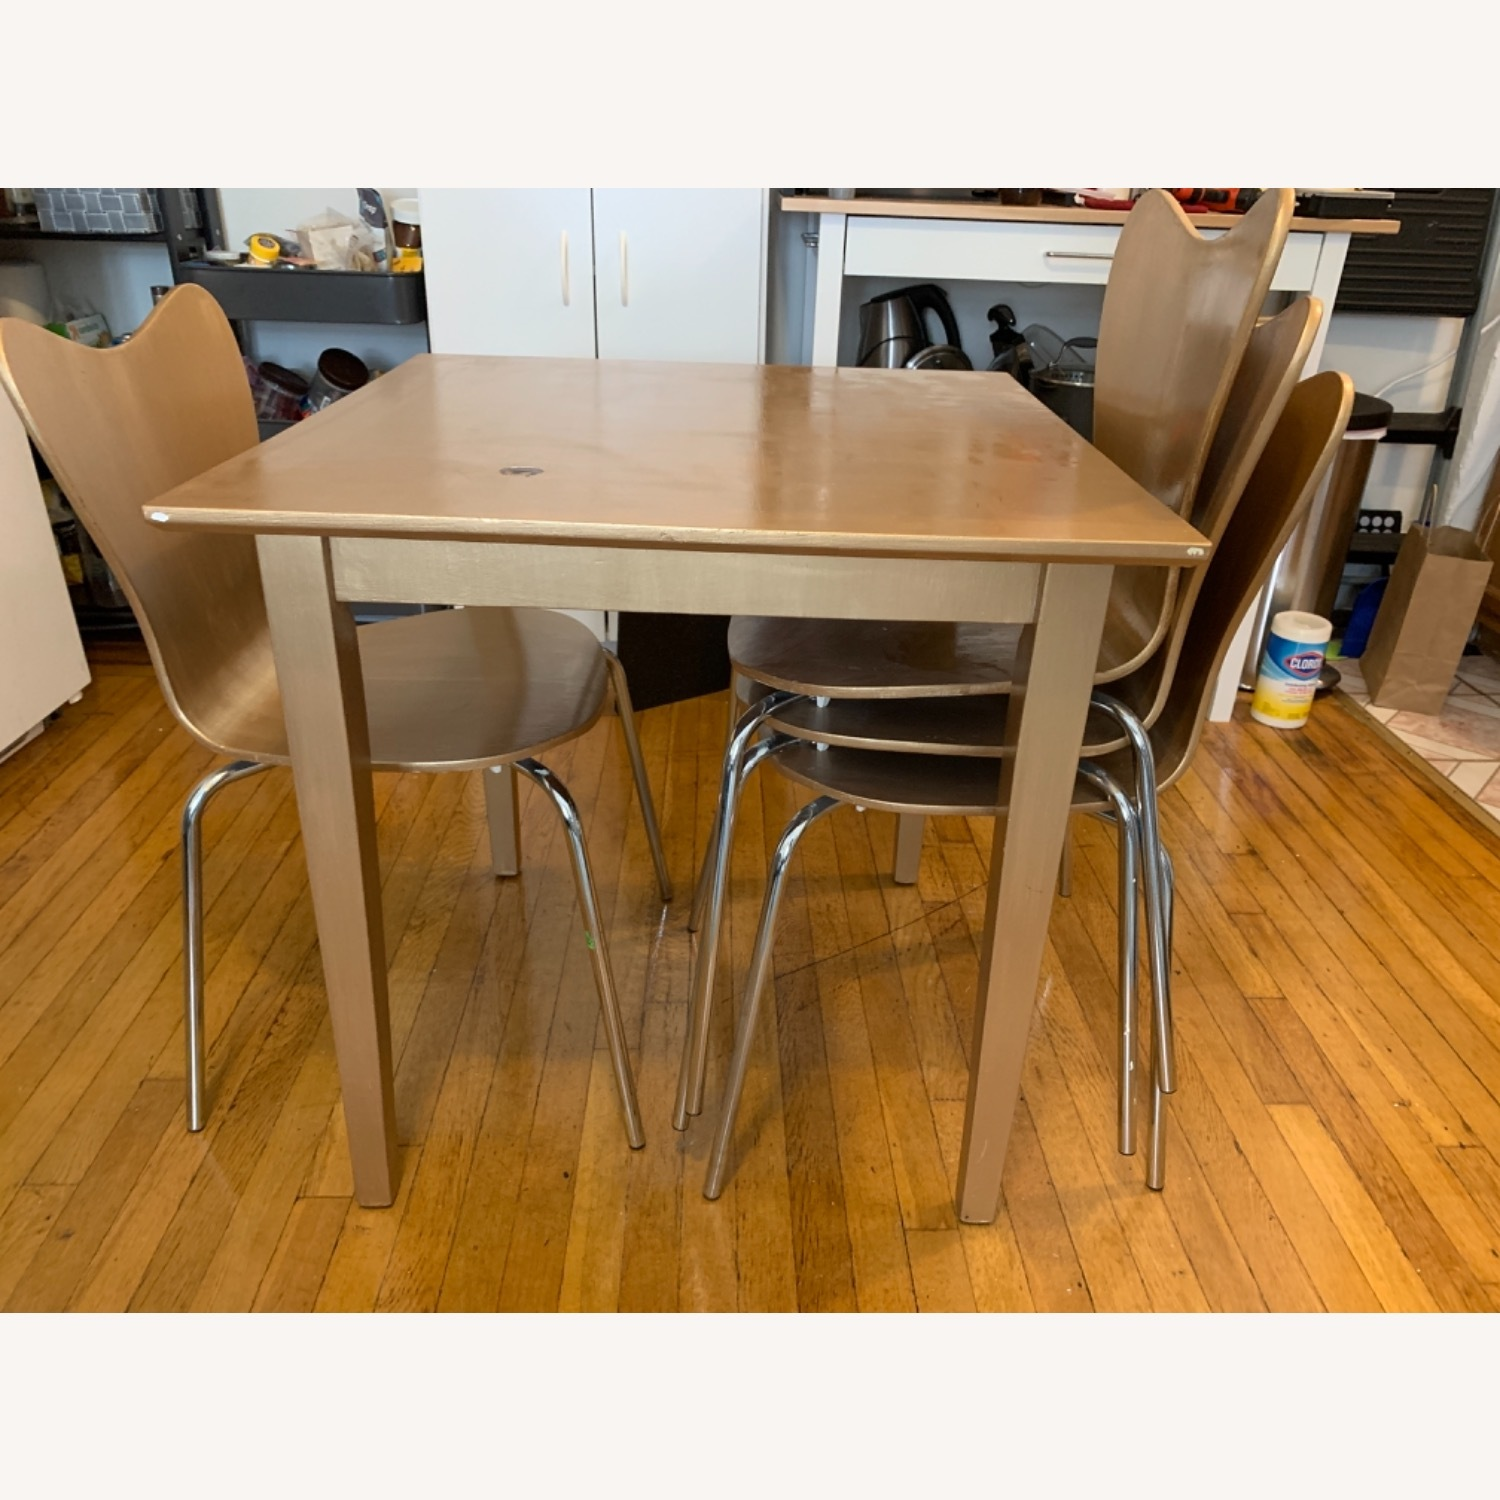 Gold West Elm (4) Chairs and Table - image-12